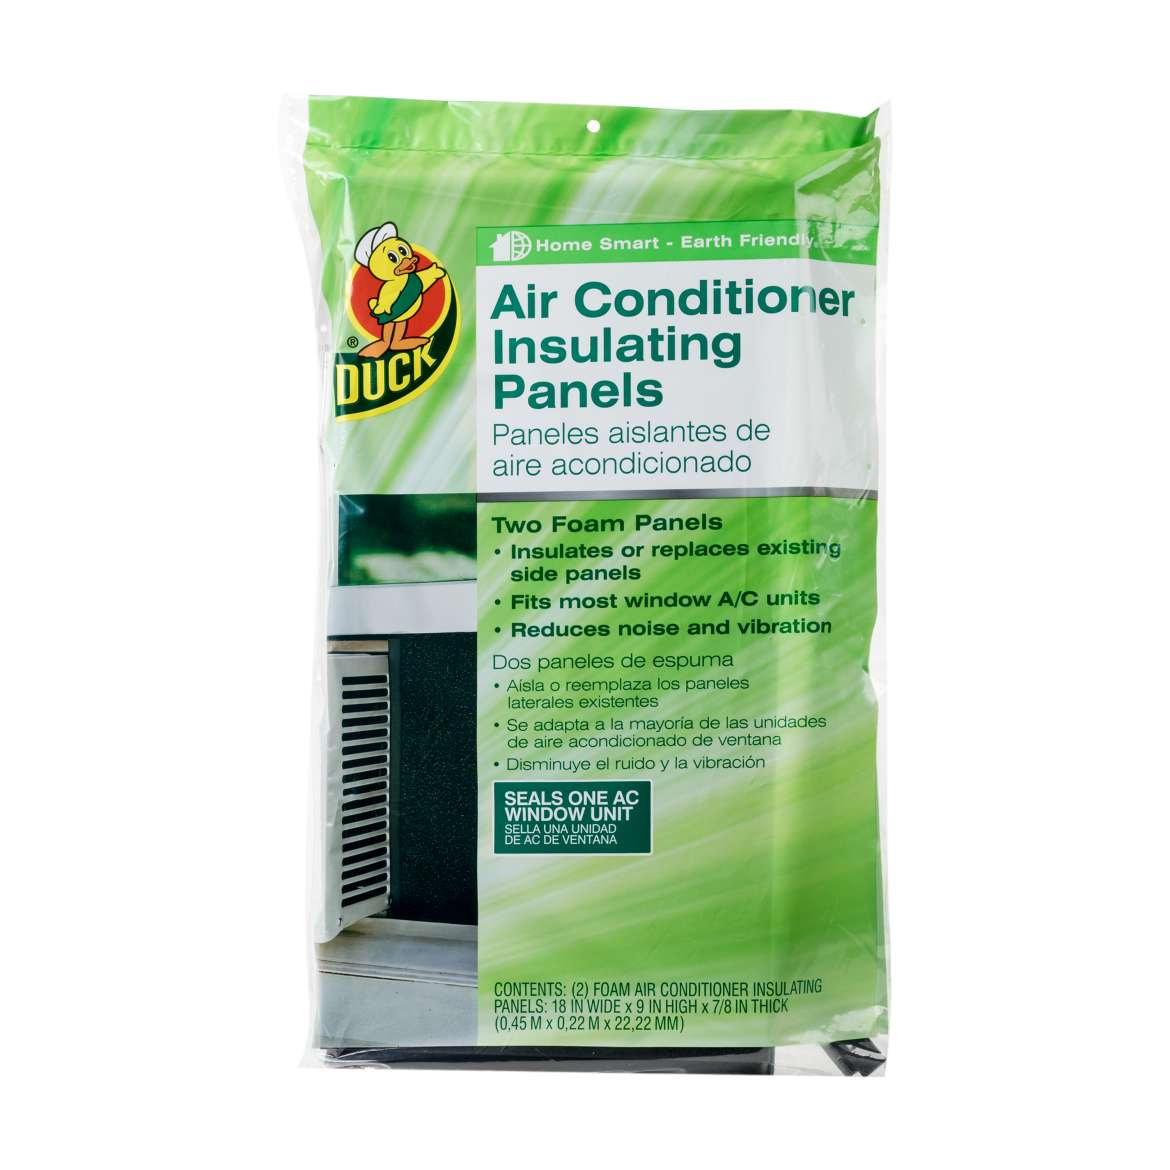 Air Conditioner Insulating Panels